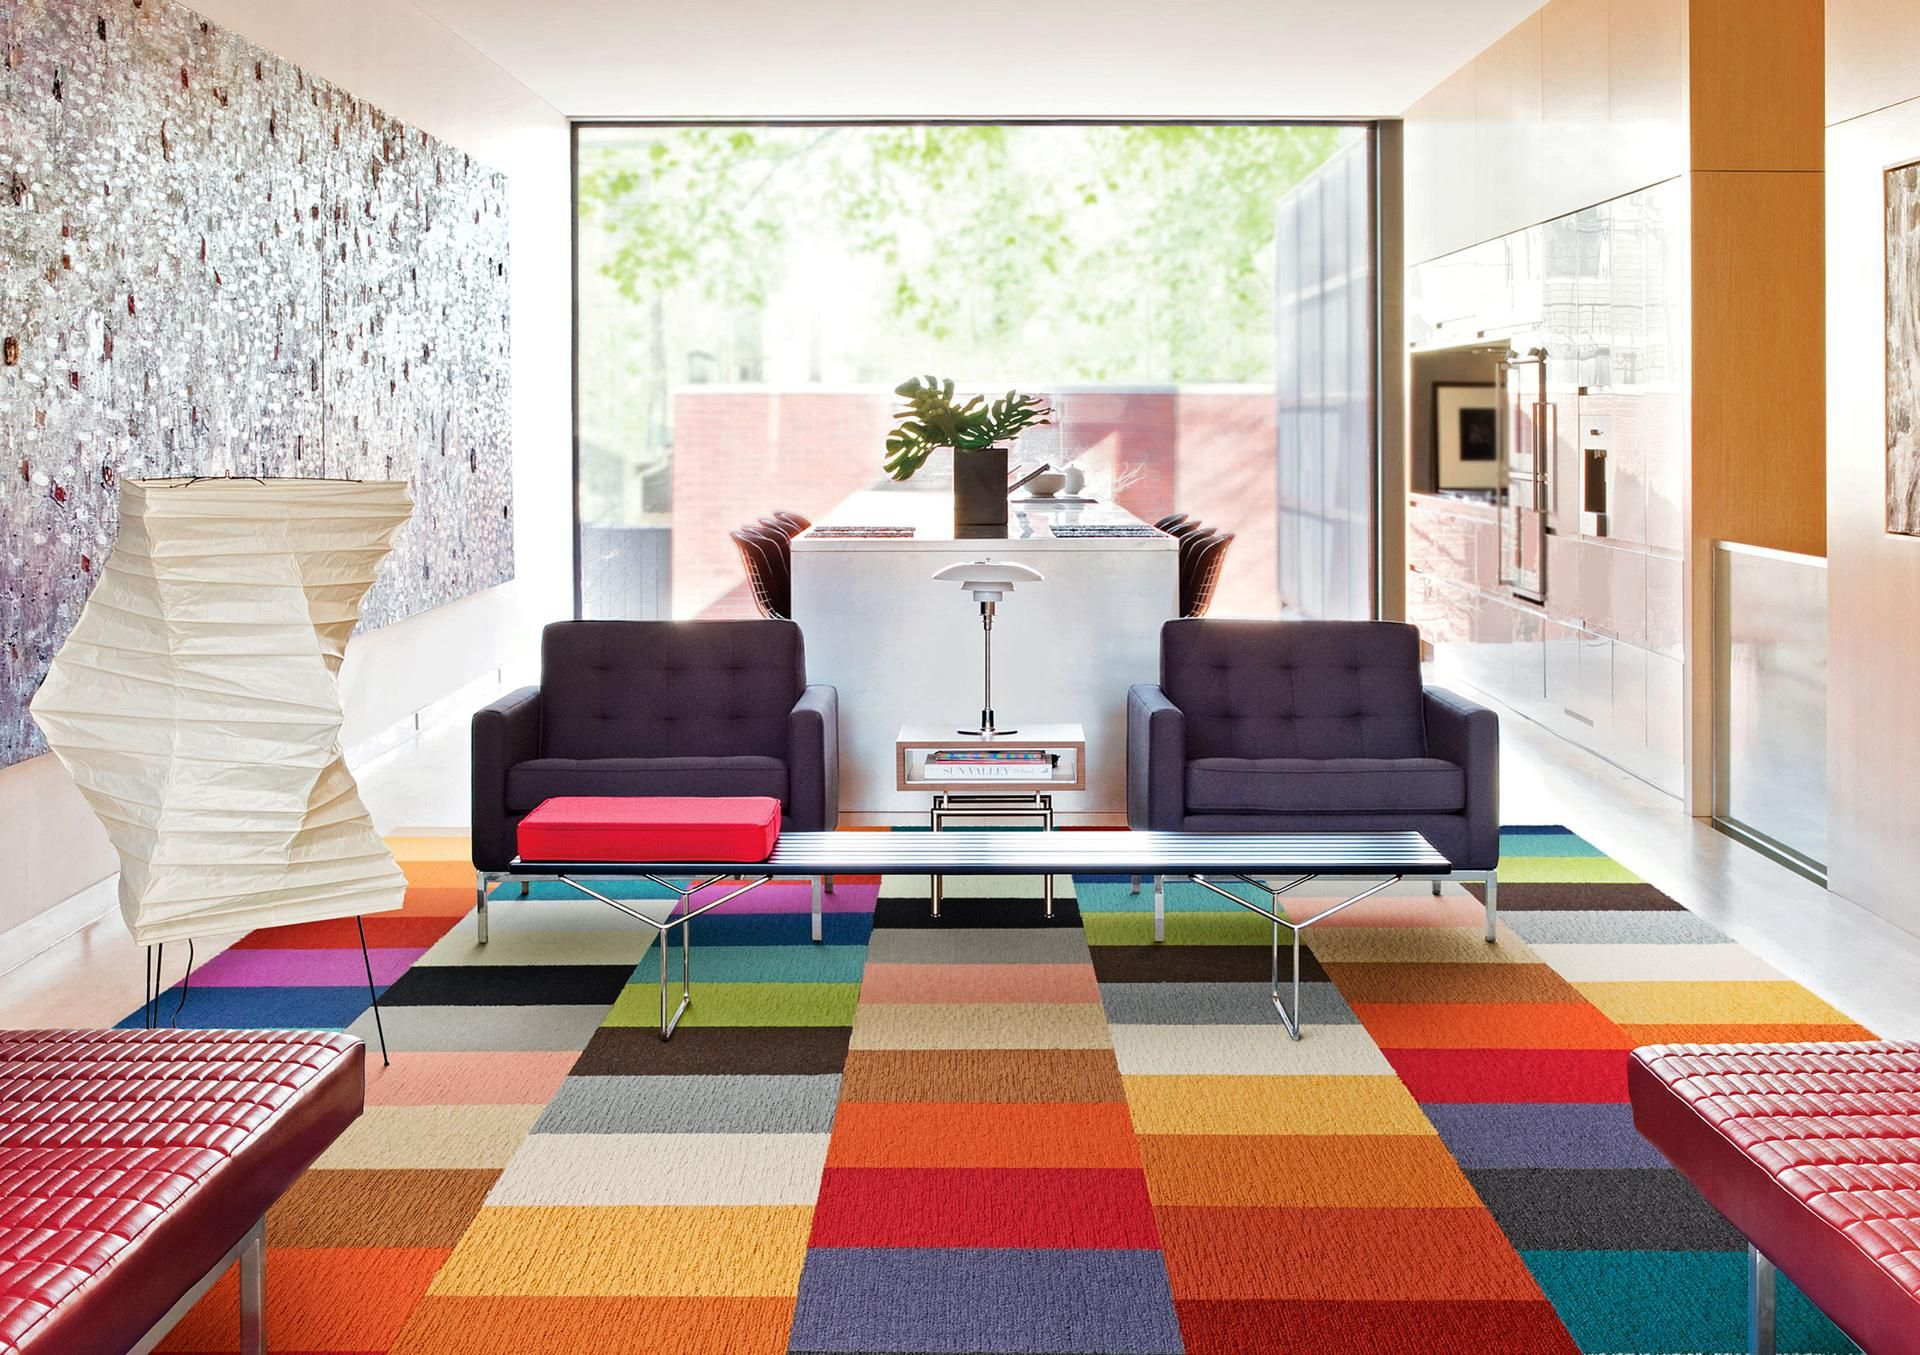 Carpet Tile Ideas flor carpet tiles design ideas - penelusuran google | floor